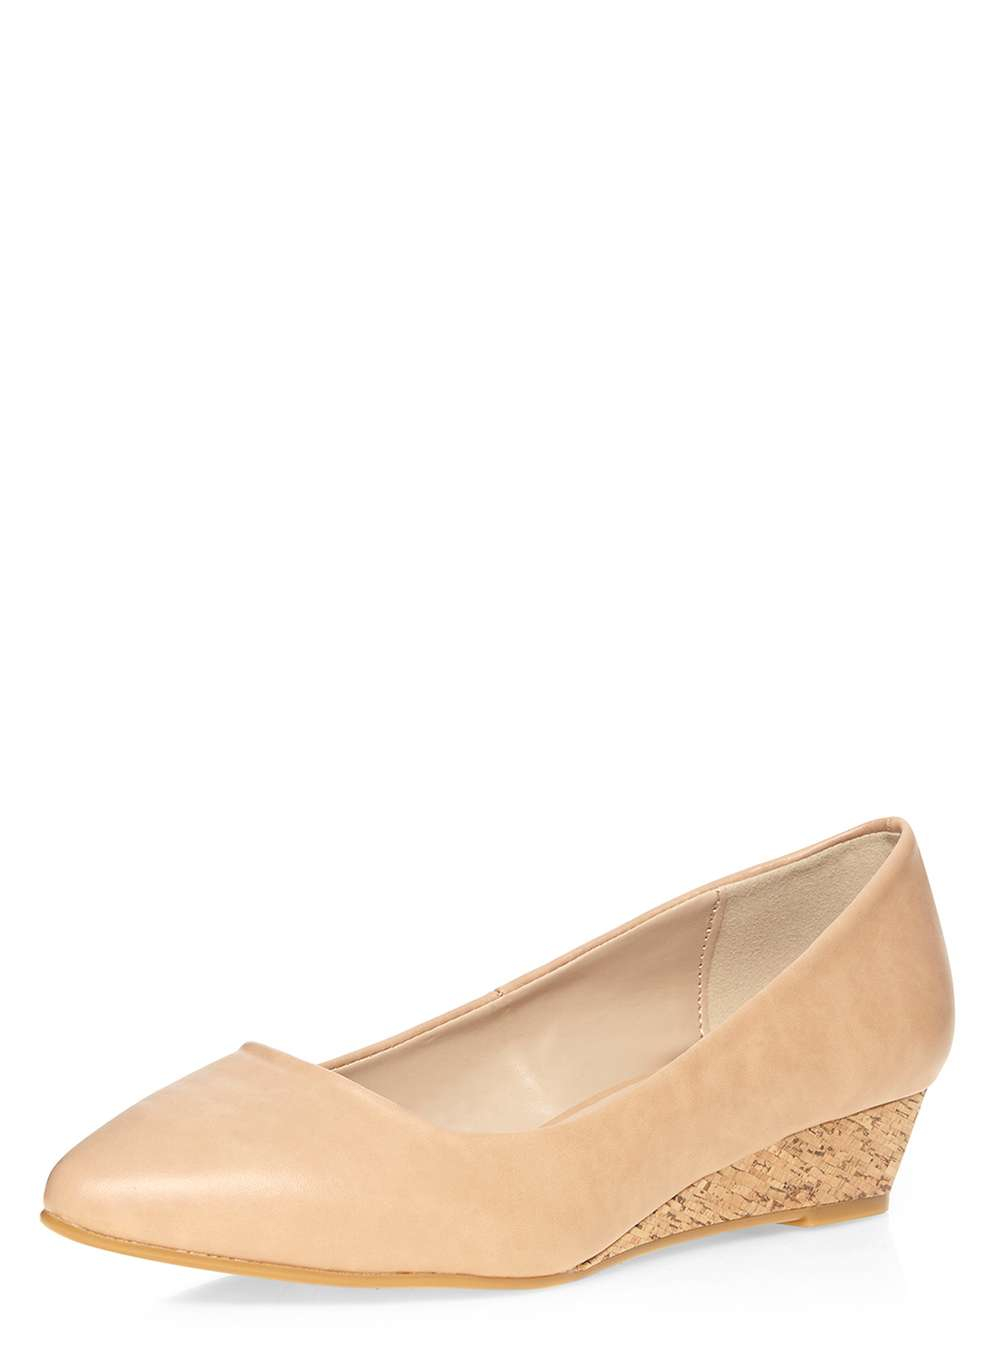 dorothy perkins womble wedge court shoes lyst